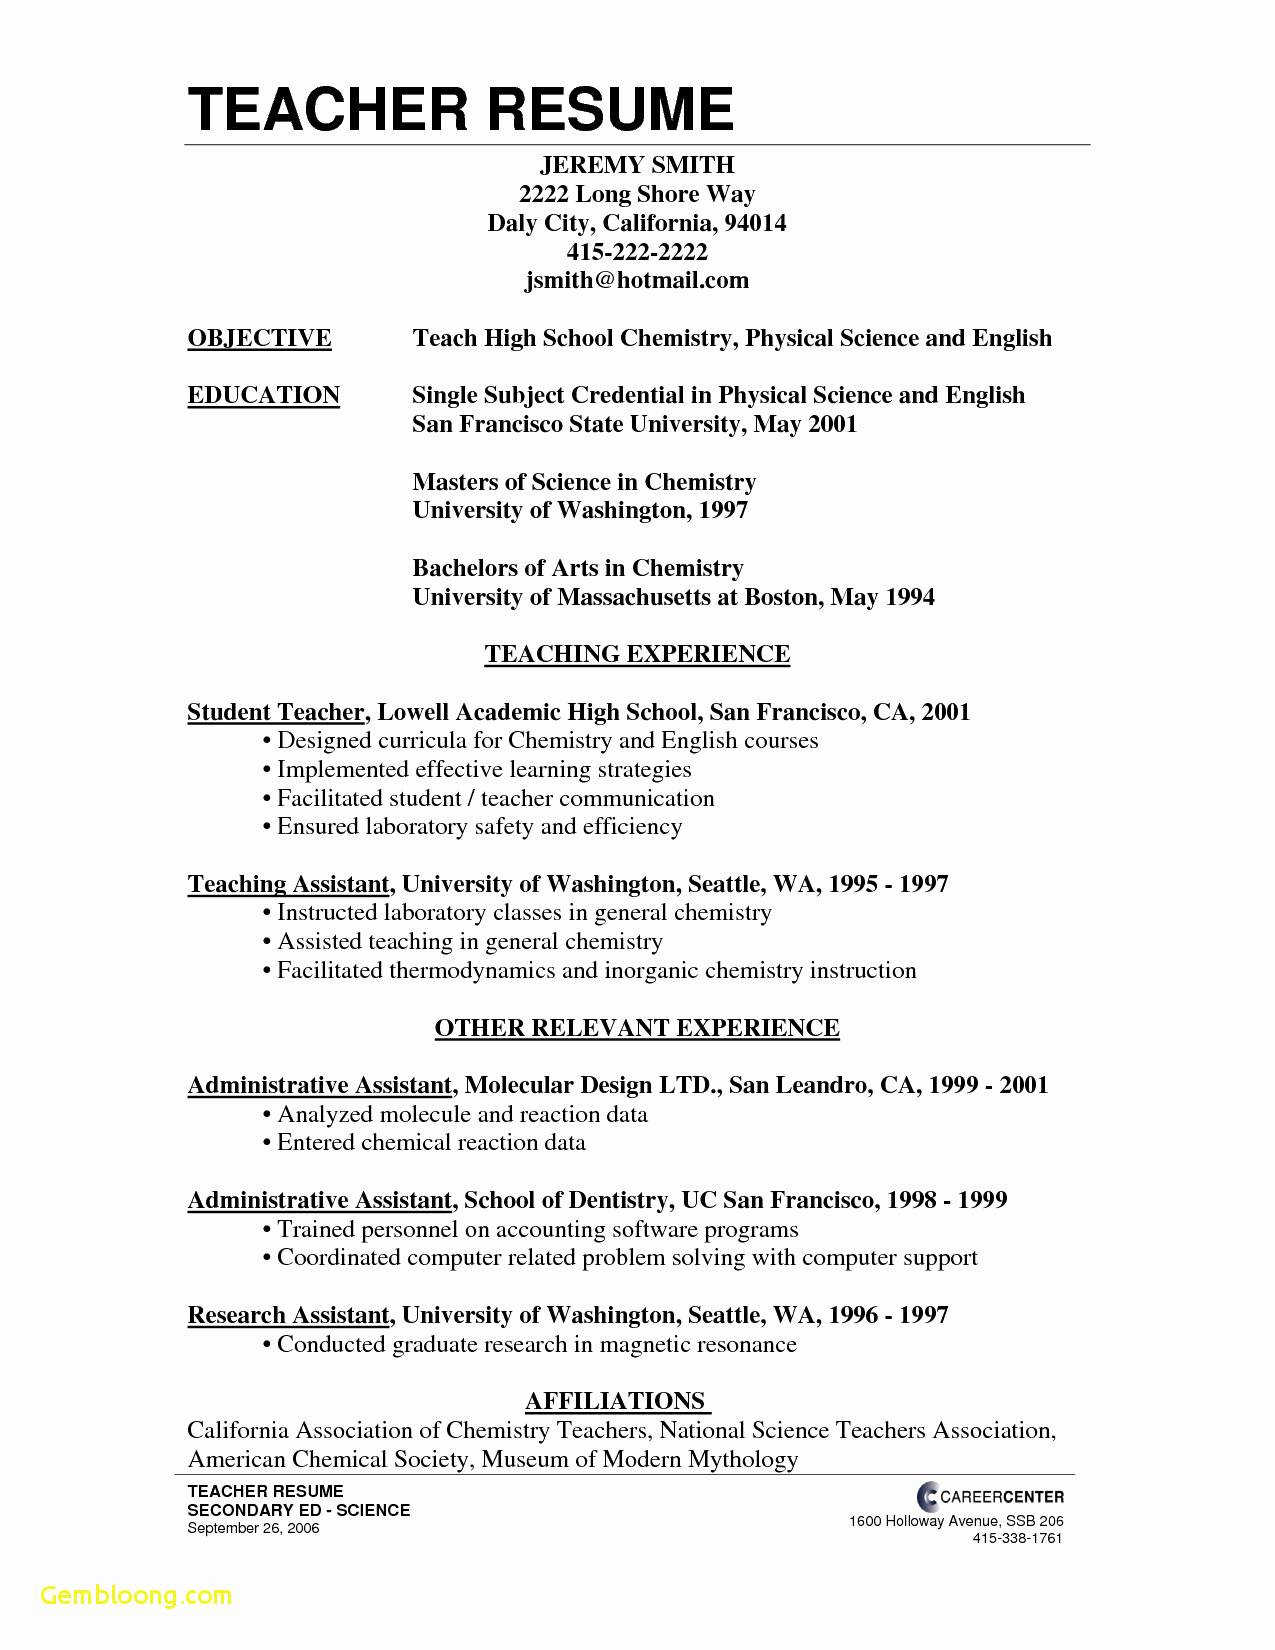 Internal Cover Letter Template - Internal Resume Template Annual Internal Audit Plan Template Luxury